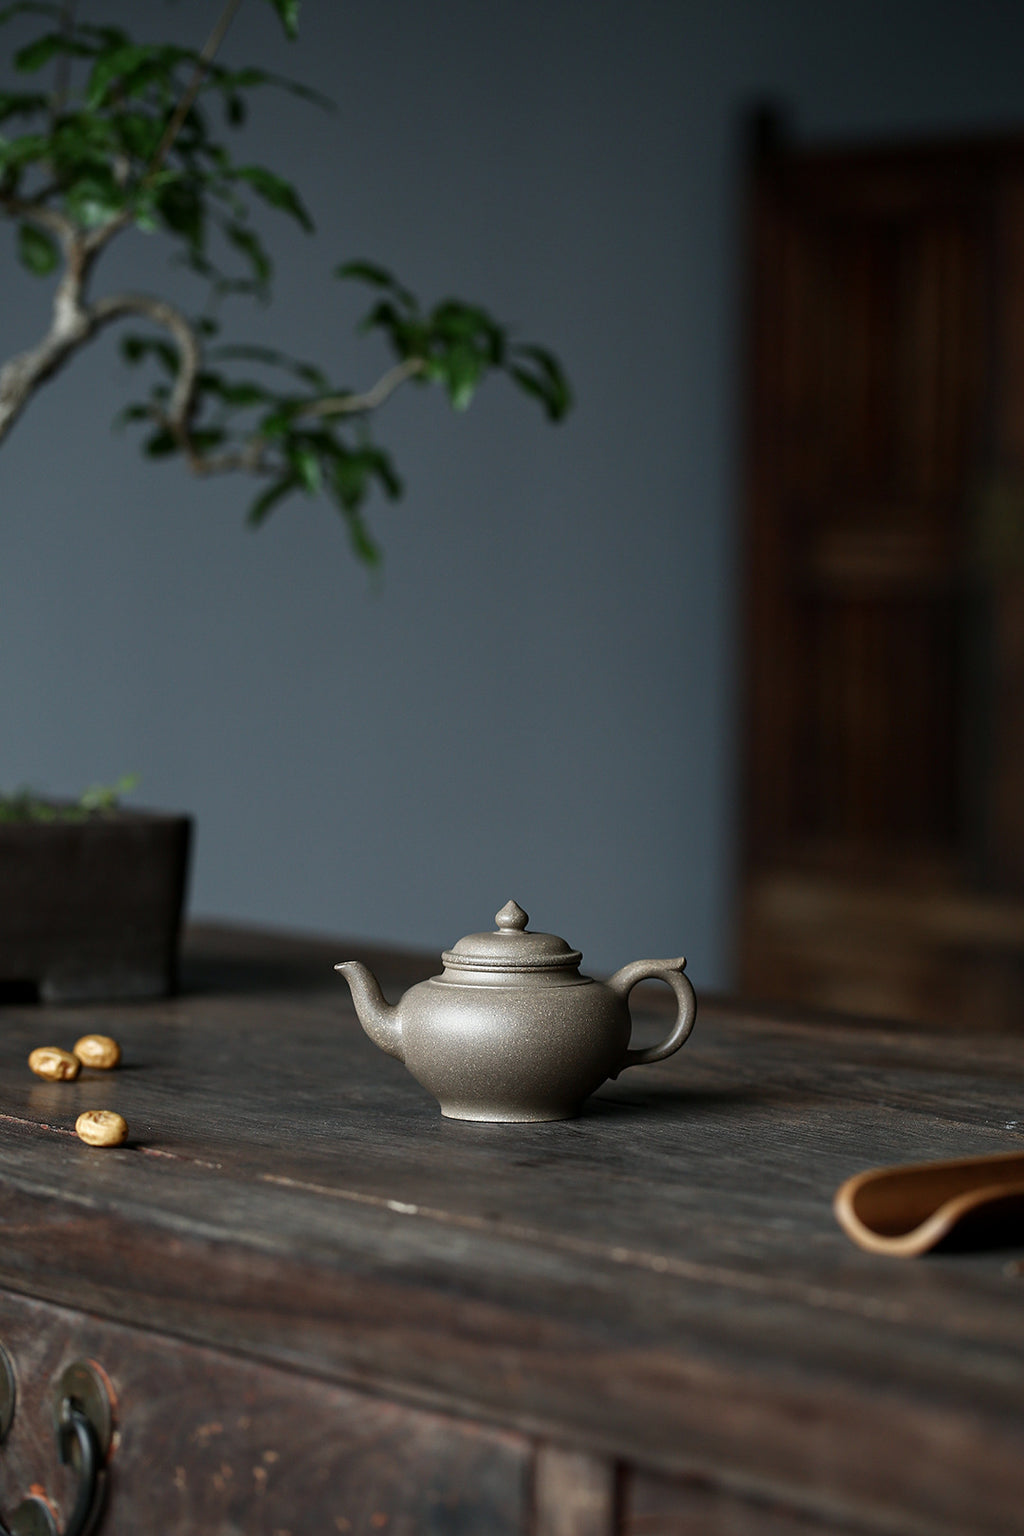 笑樱壶 Xiao Ying 雪花段泥  Snow Duanni  金林传砂 杭海.180ML - The Phans Yixing Zisha Teapot